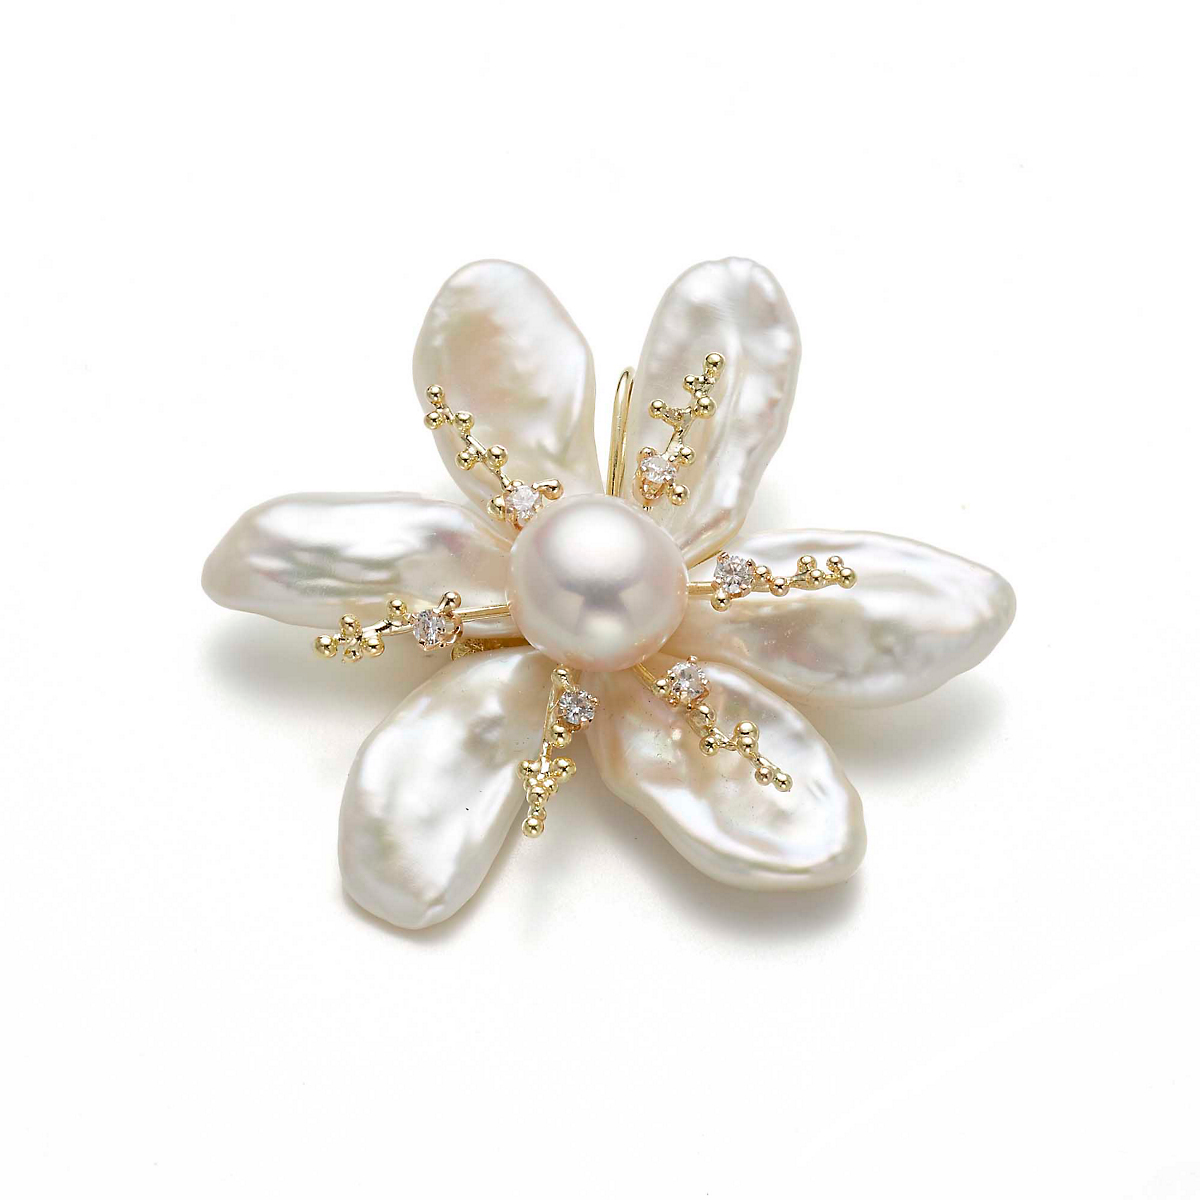 Russell Trusso Elongated Pearl & Diamond Flower Brooch